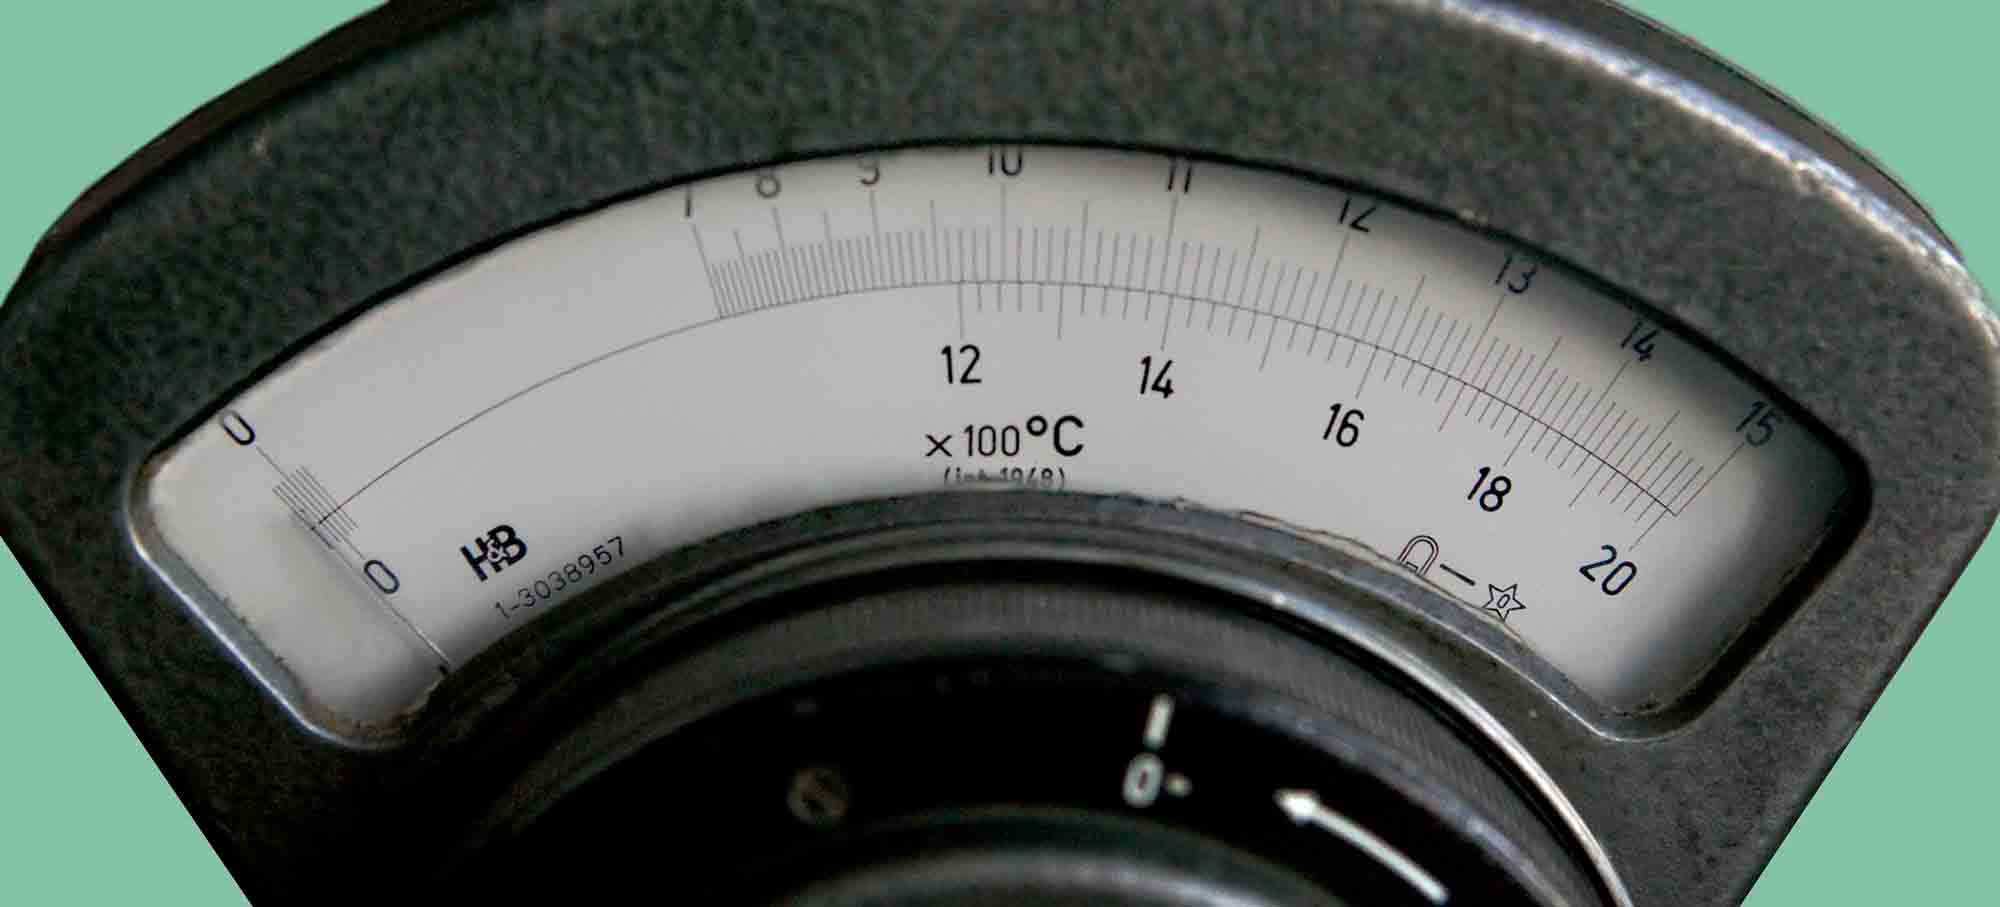 Deprez_Photo_Pyrometer_H&B_Dial_view.jpg